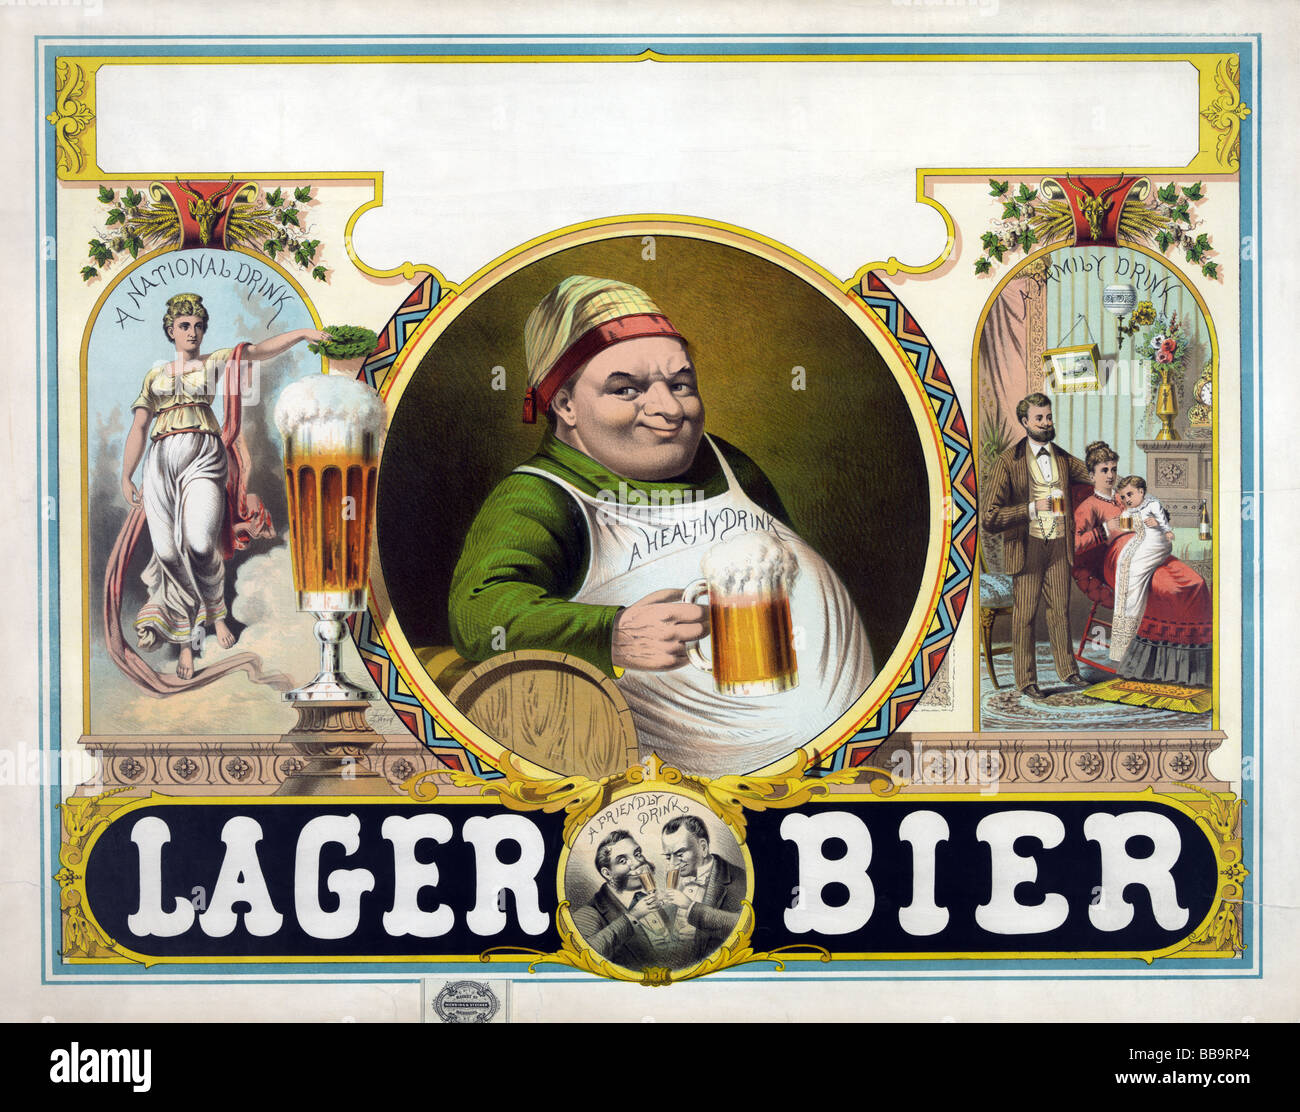 Late nineteenth century (circa 1879) lithograph poster advertising Lager Bier. - Stock Image